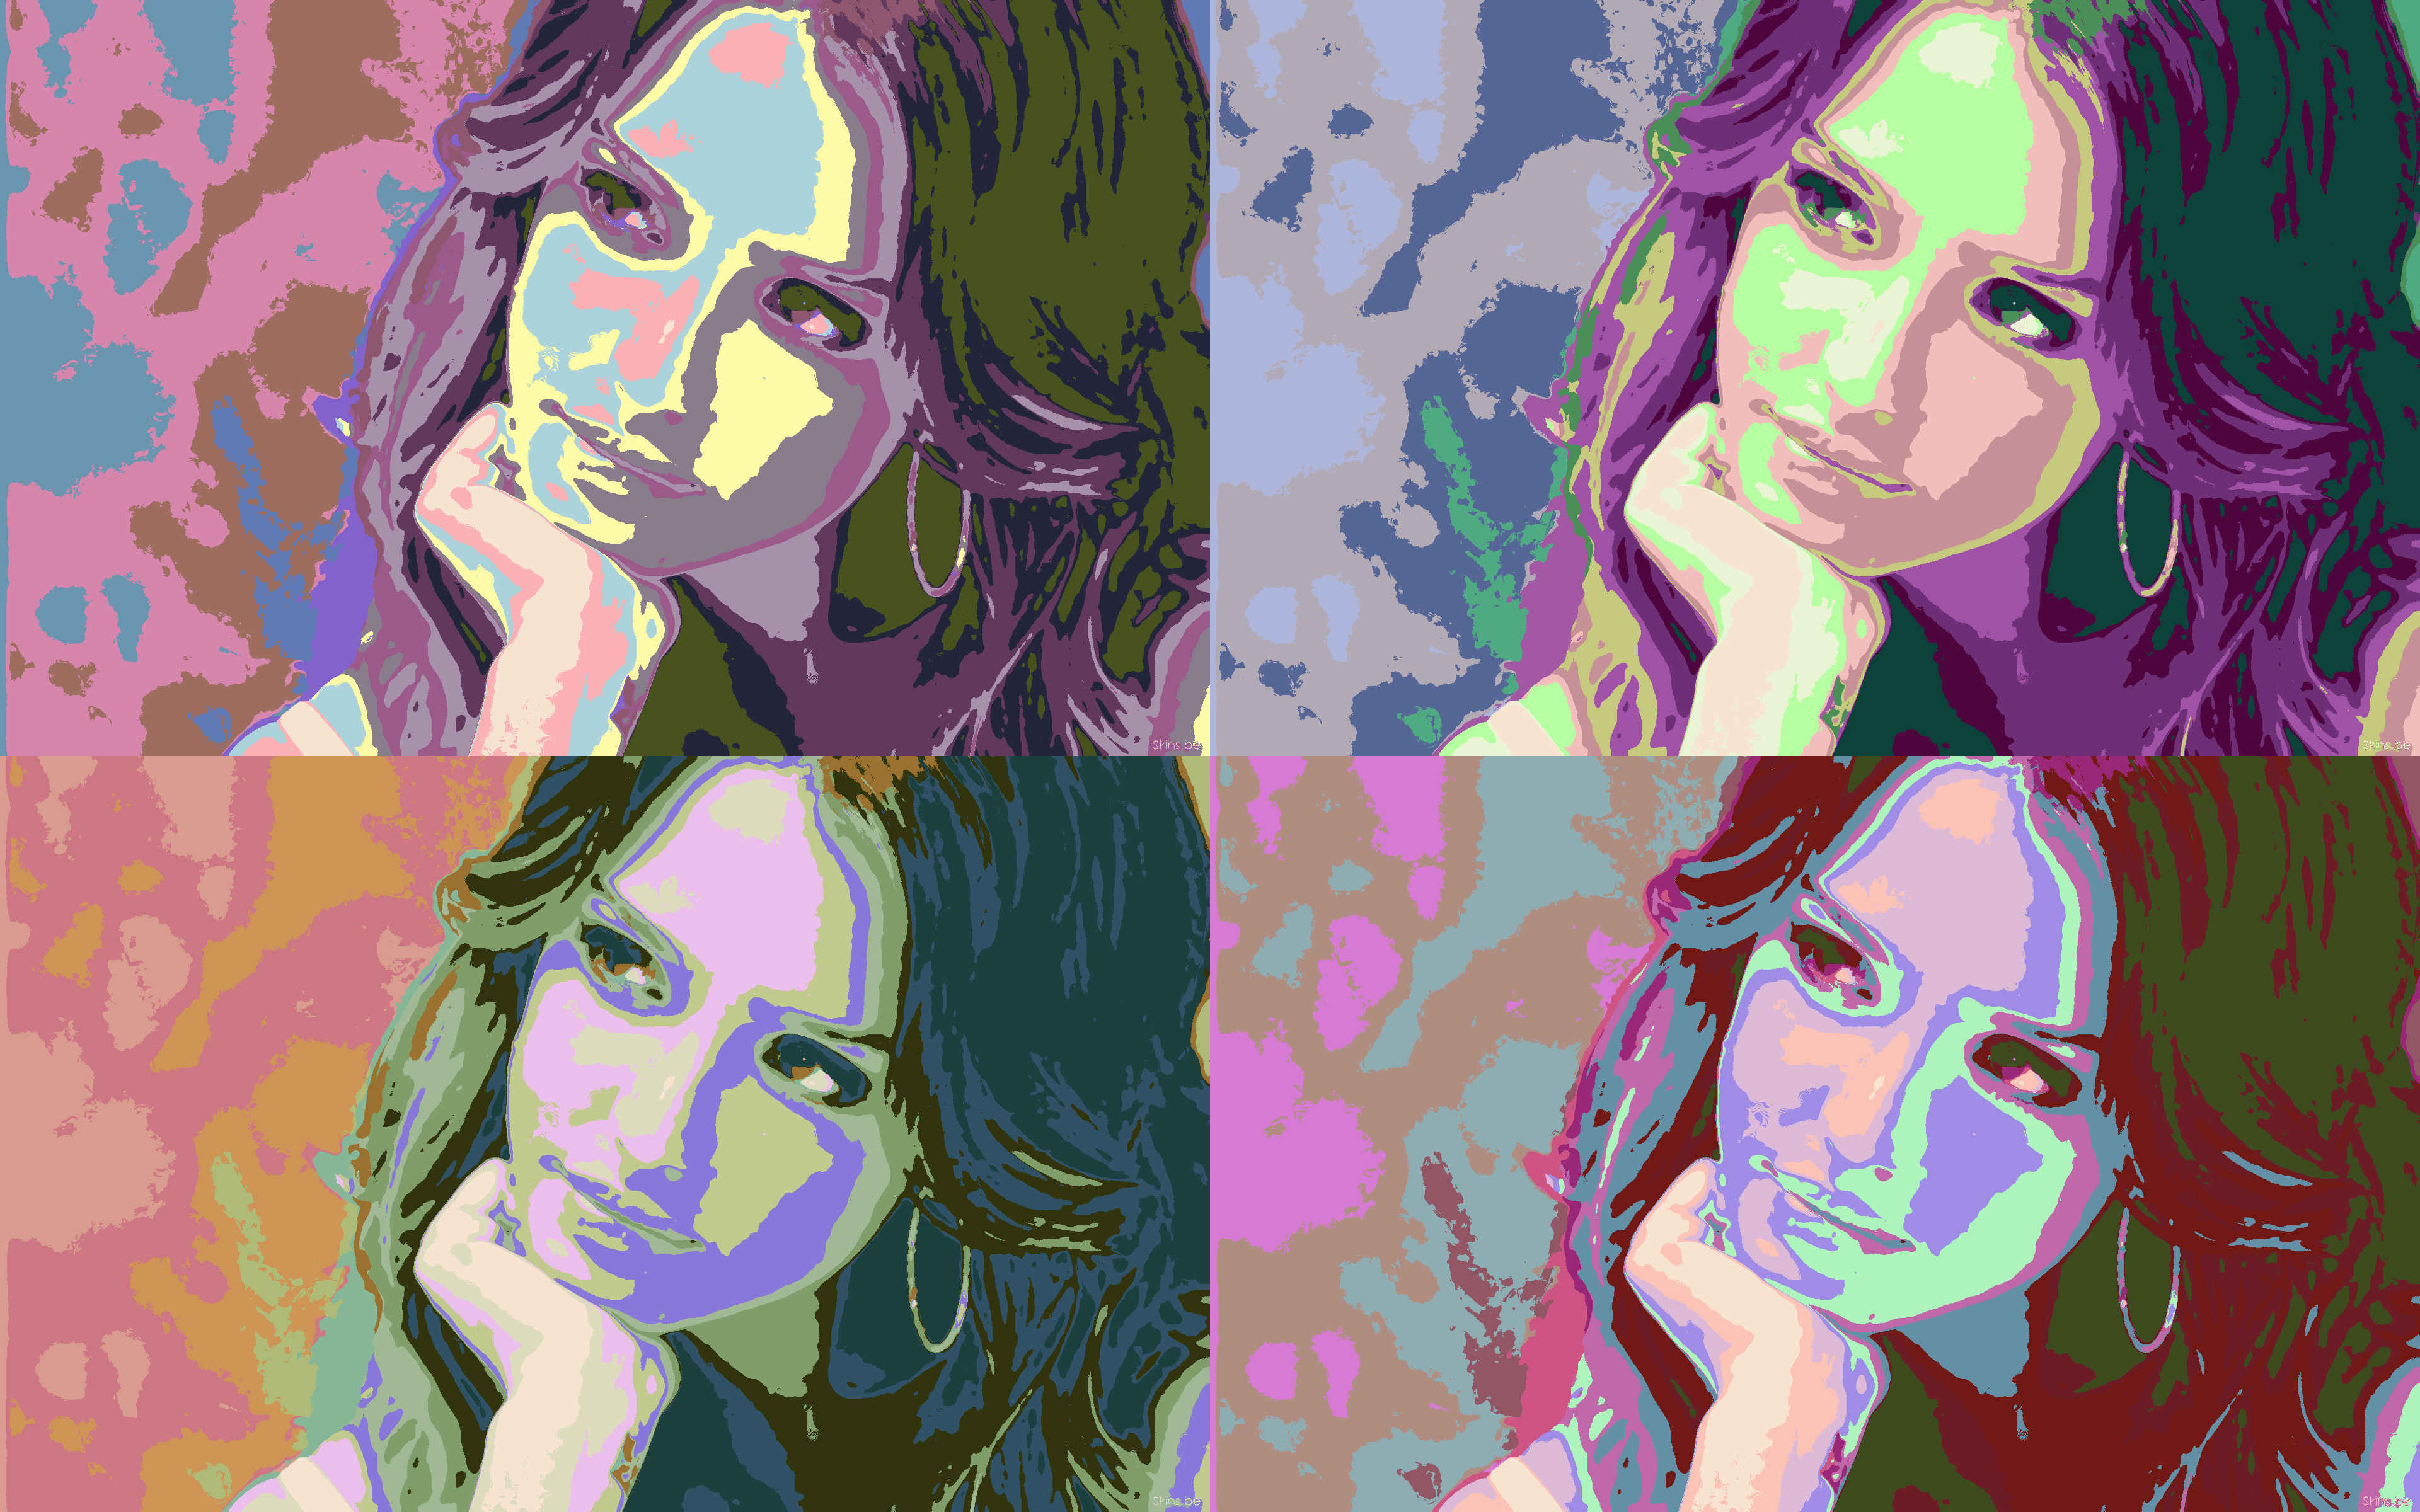 799547-actress-brunettes-jessica-alba-women with 4 crazy warhol effects.jpg